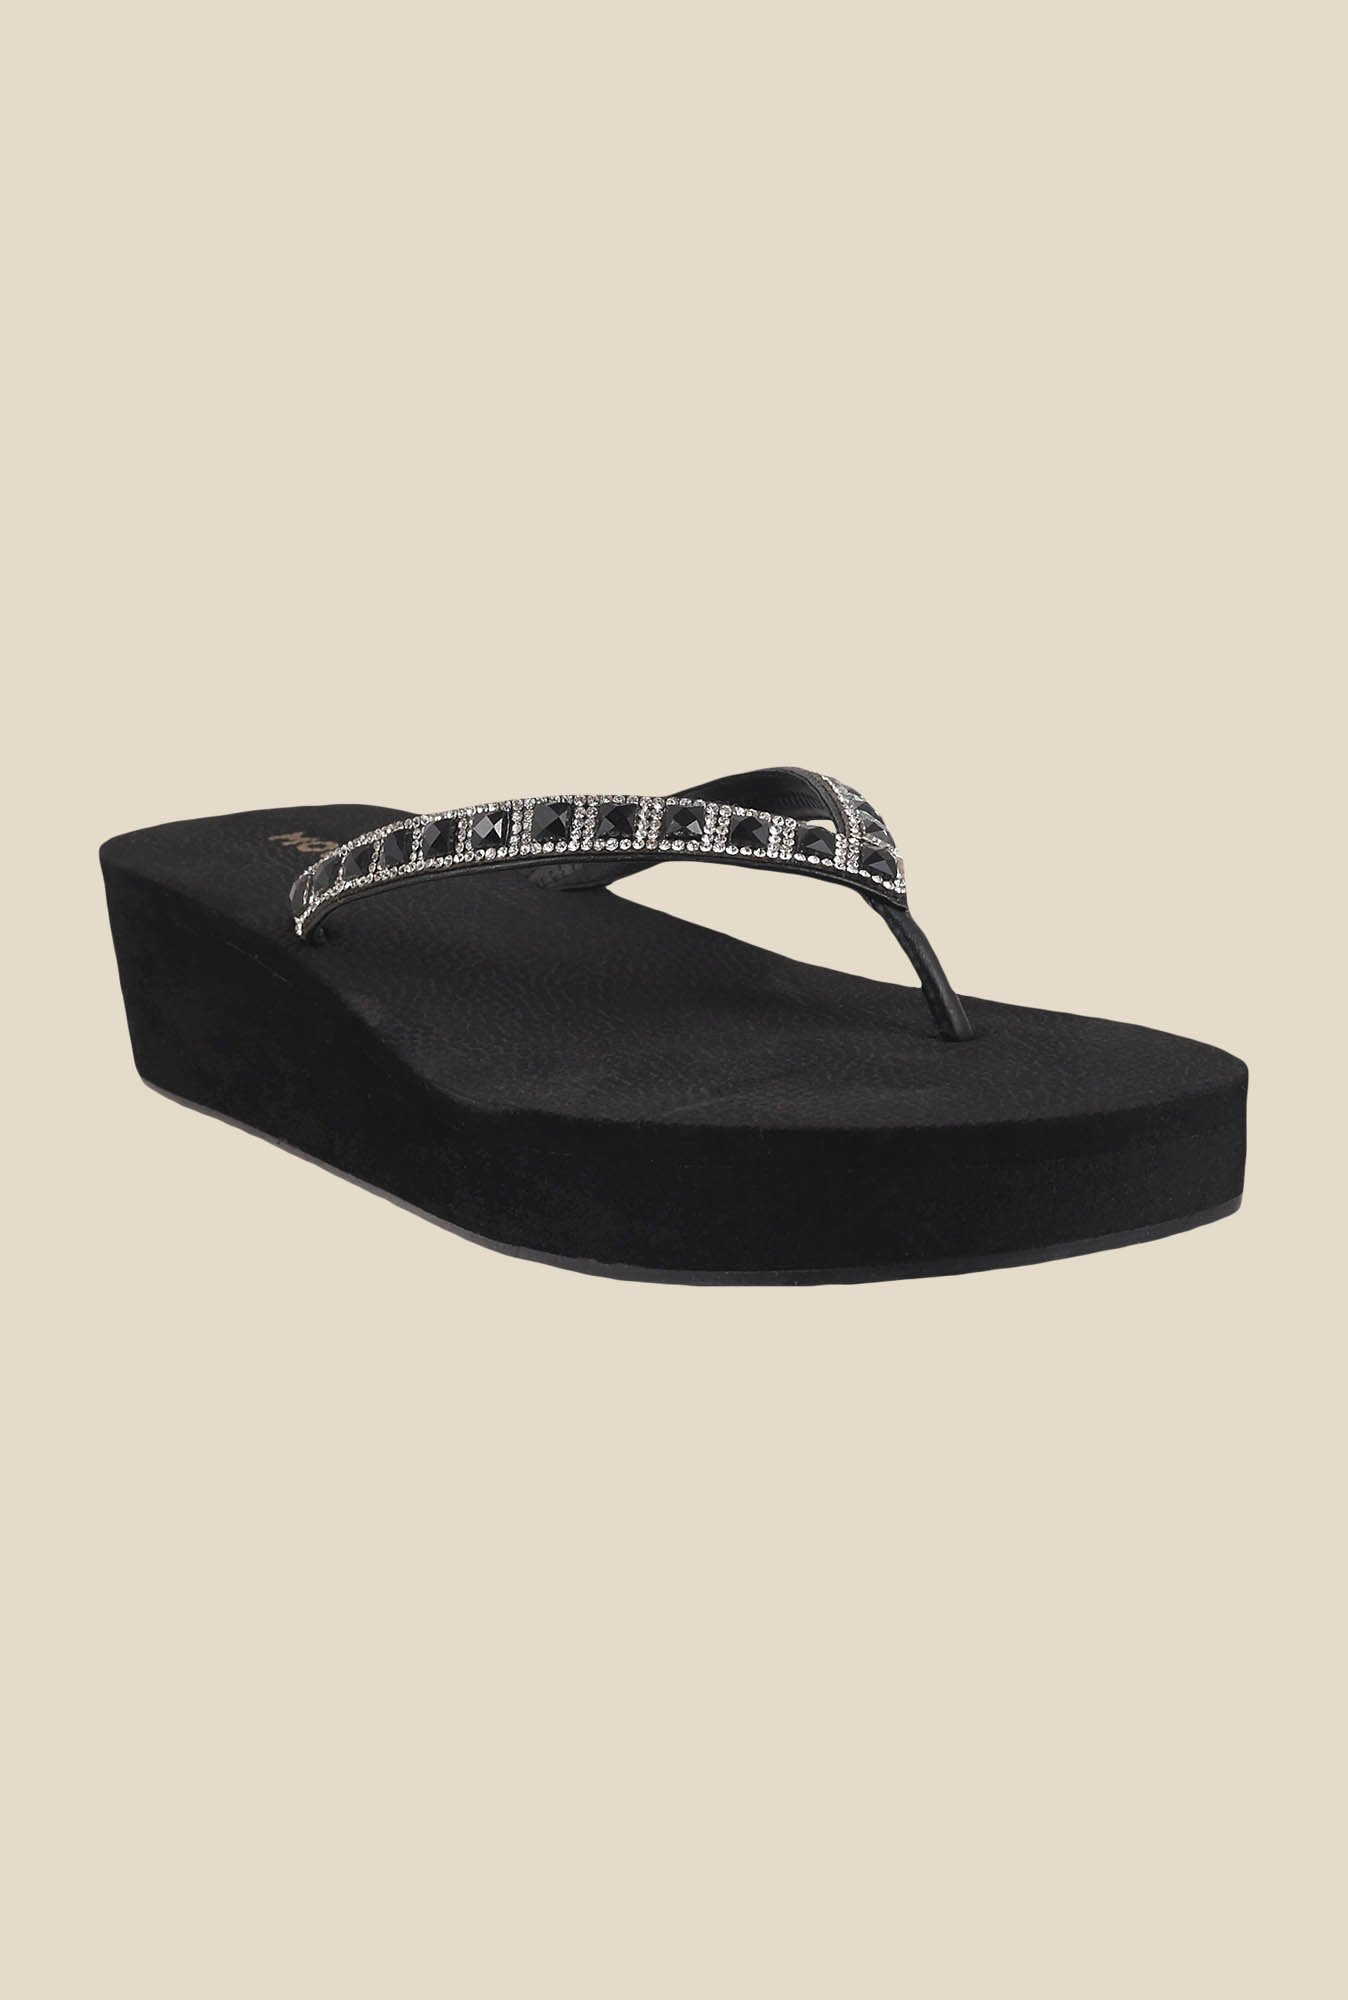 Mochi Black & Silver Thong Sandals